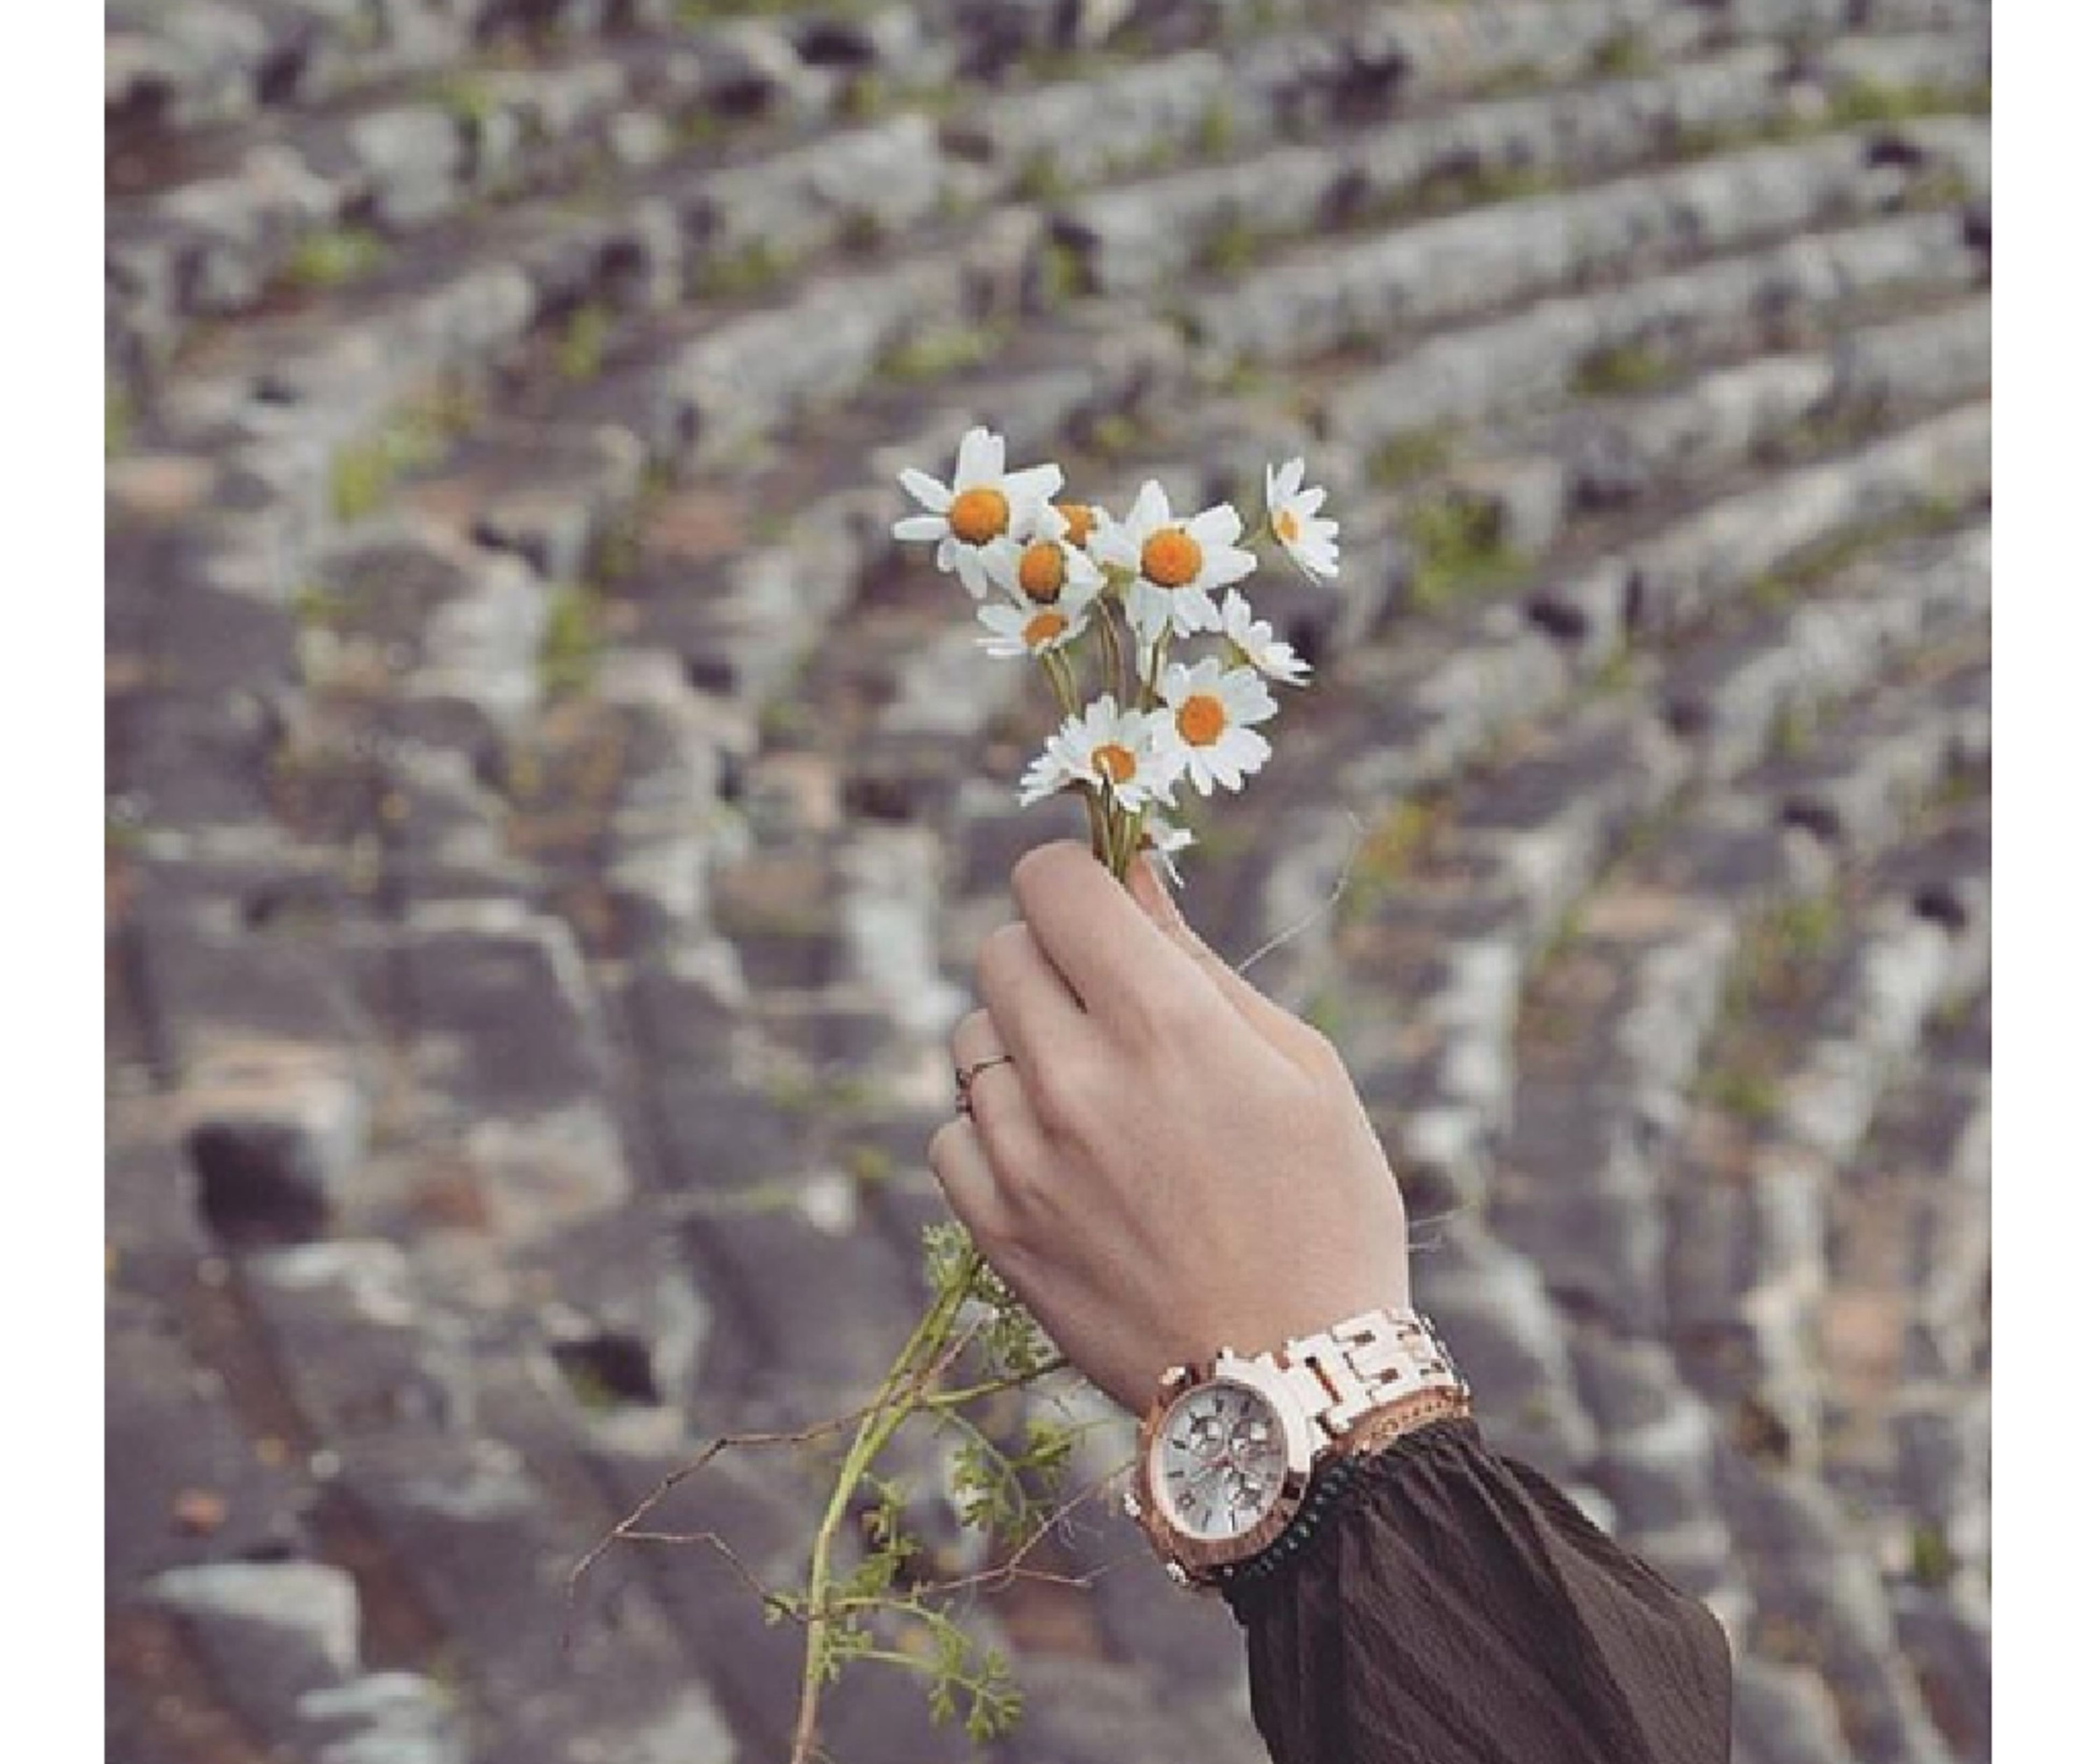 human hand, human body part, flower, focus on foreground, close-up, day, outdoors, nature, beauty in nature, adults only, one person, freshness, flower head, adult, people